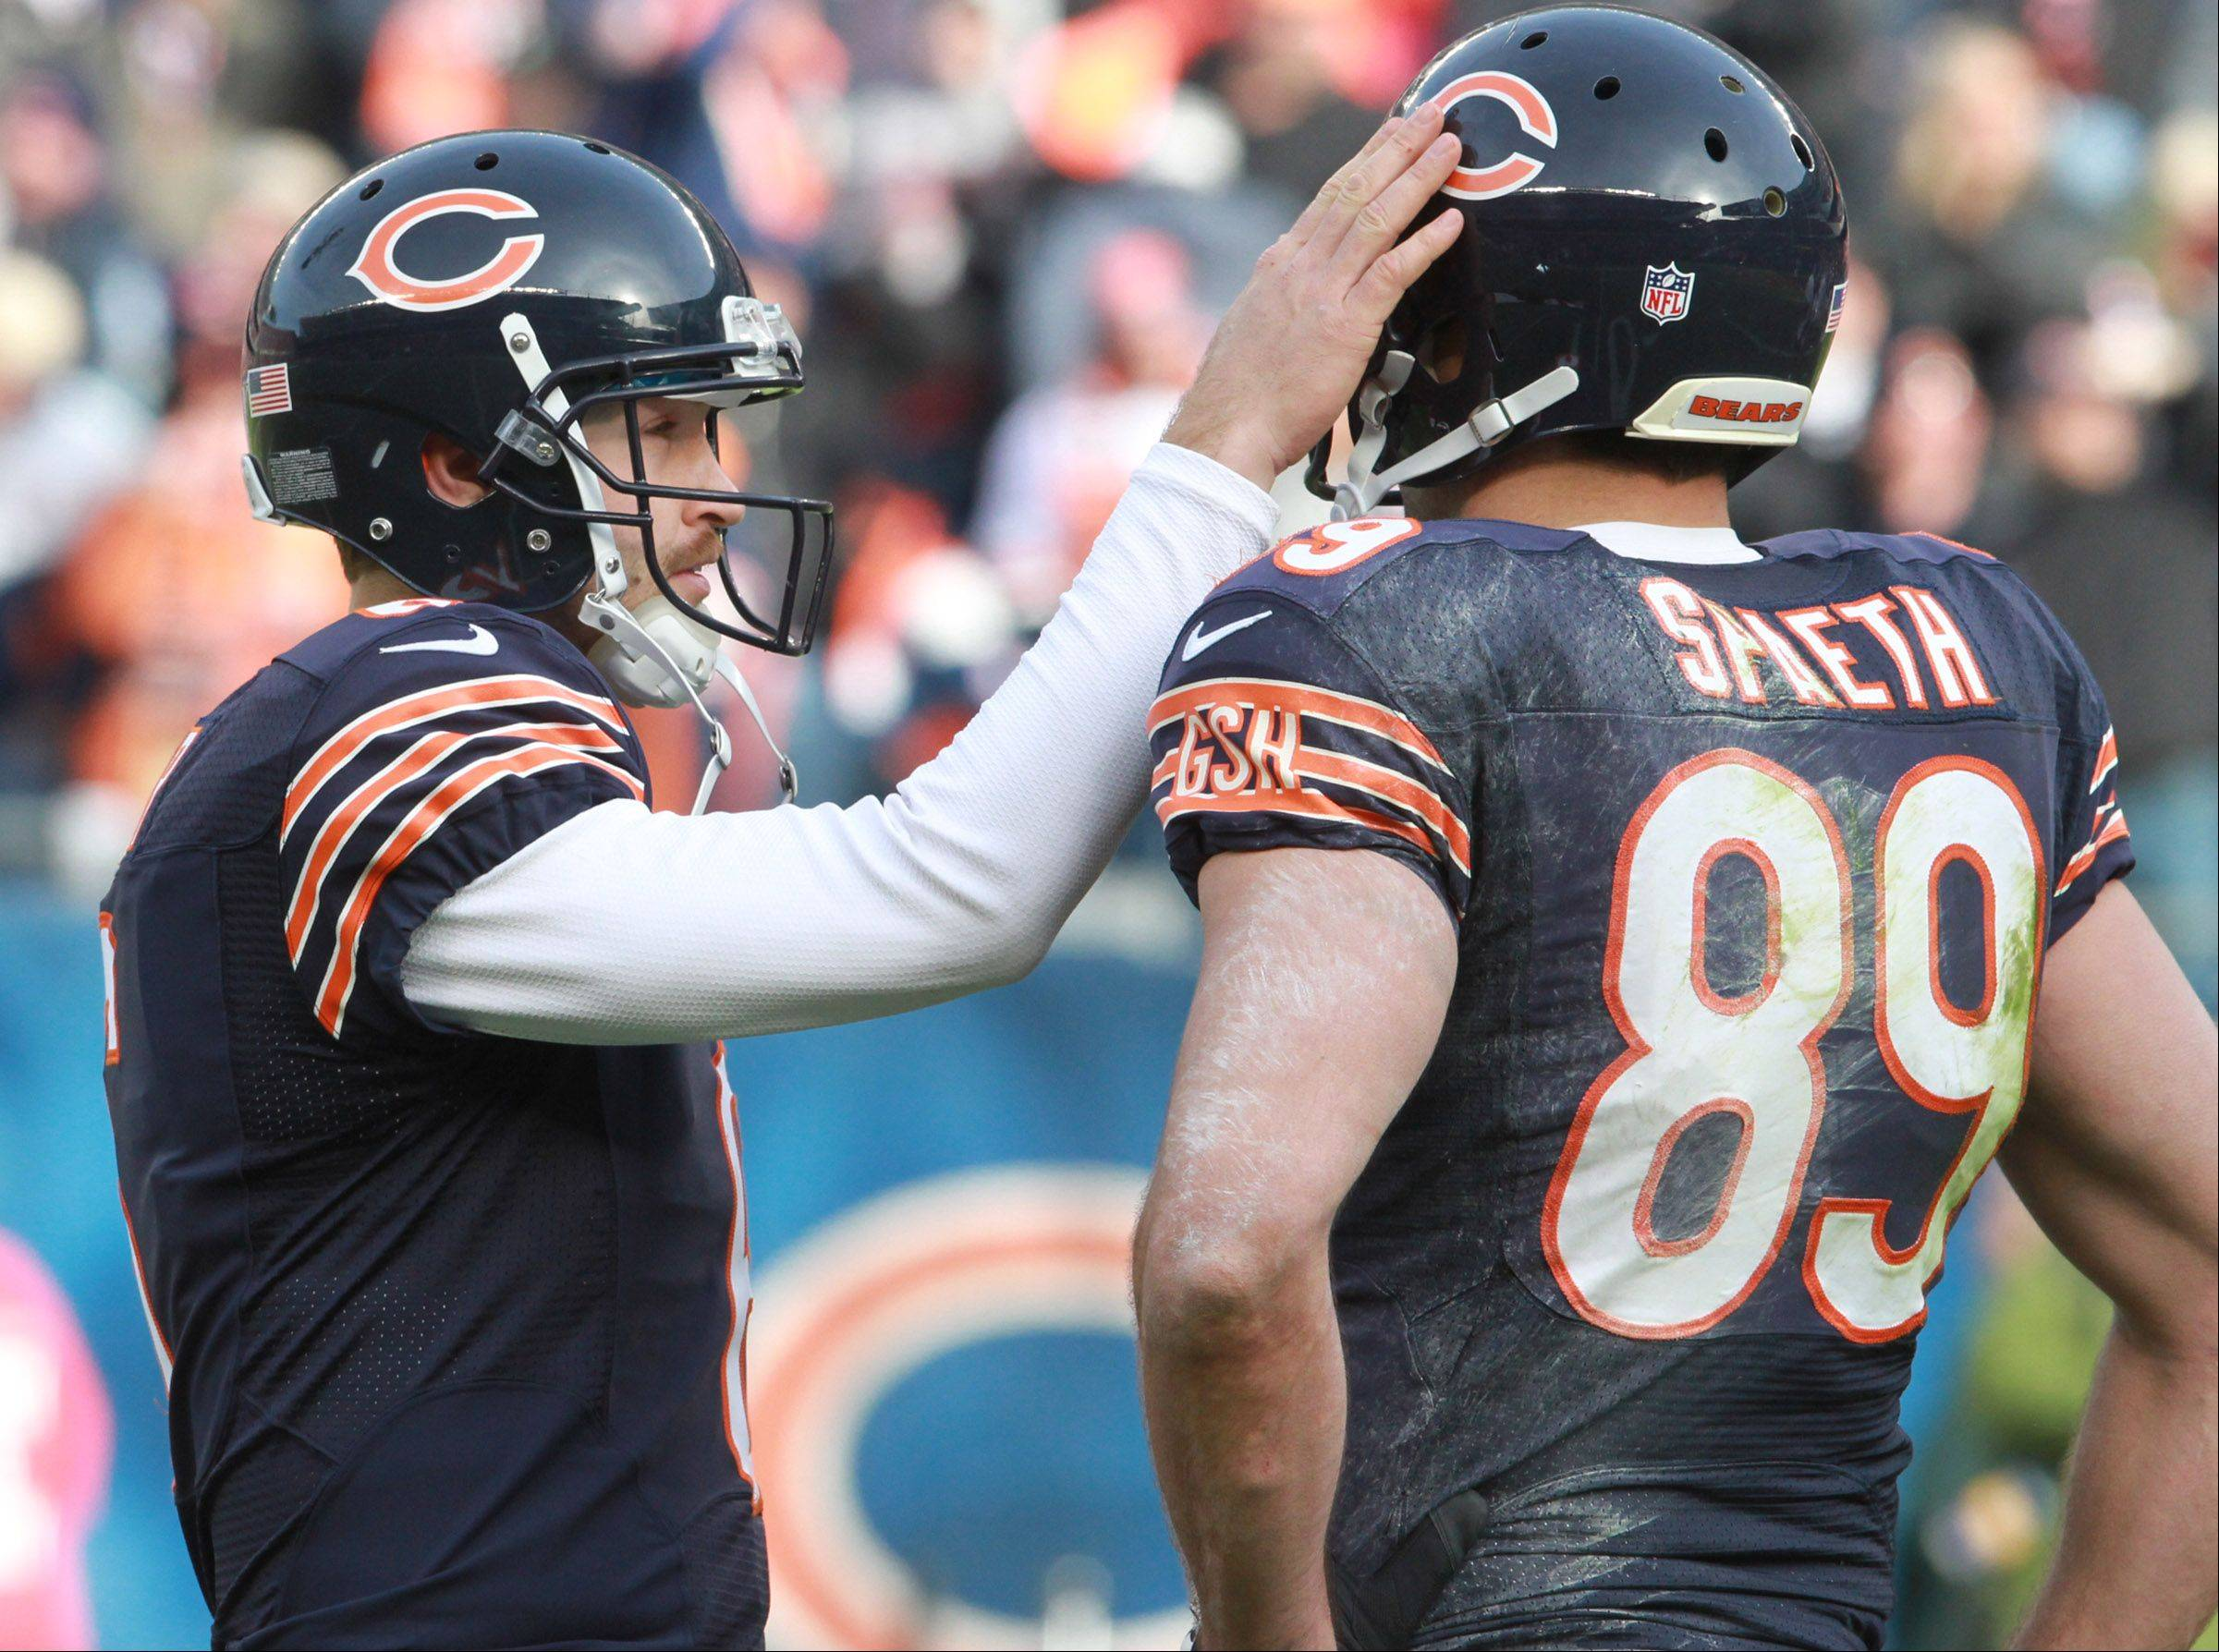 Chicago Bears quarterback Jay Cutler gives Chicago Bears tight end Matt Spaeth a hand after Spaeth scores a touchdown Soldier Field Sunday.